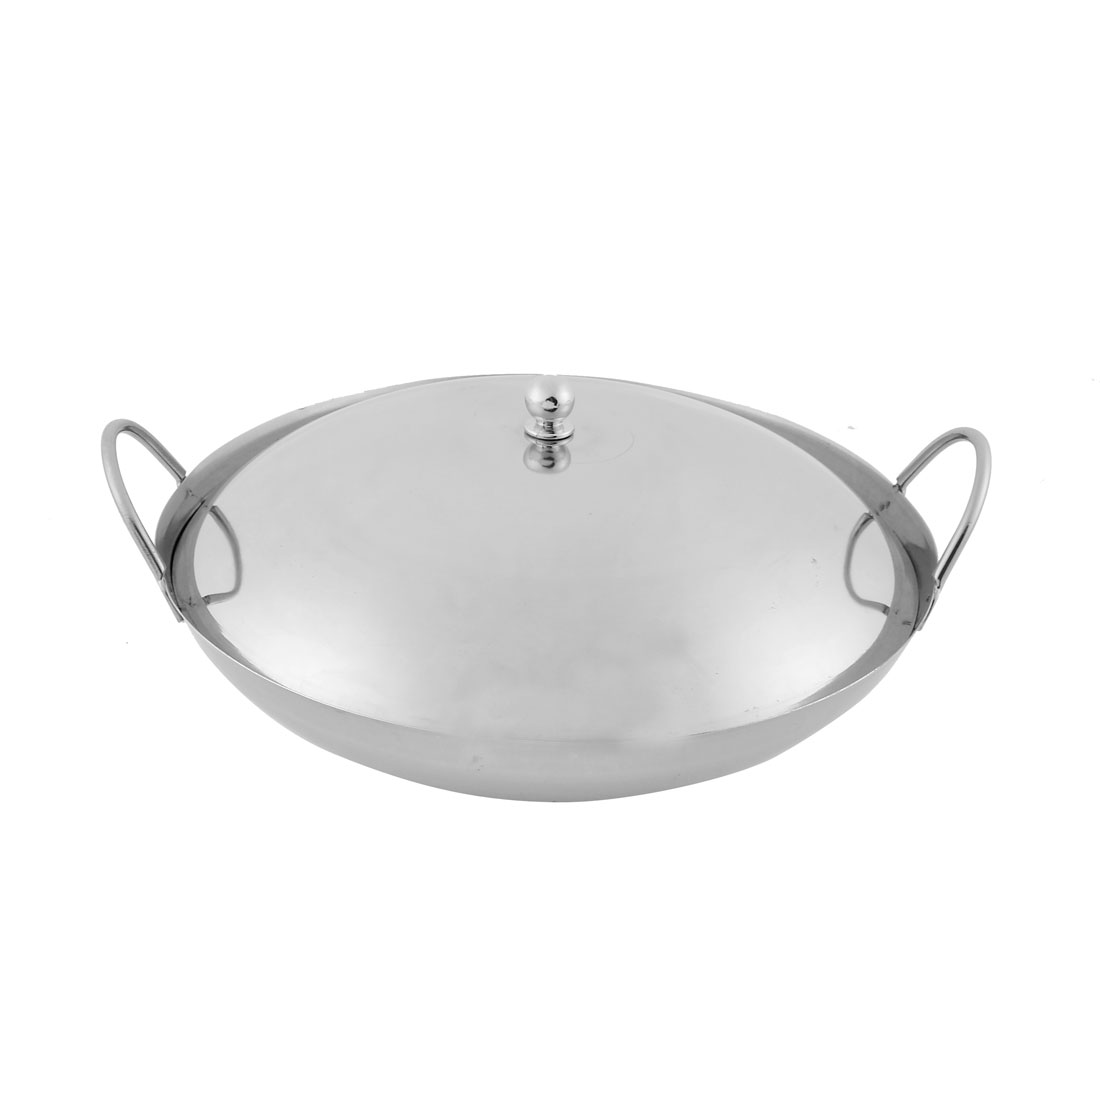 Home Restaurant Stainless Steel Chafing Dish Pot Silver Tone 25cm Diameter w Lid Cover